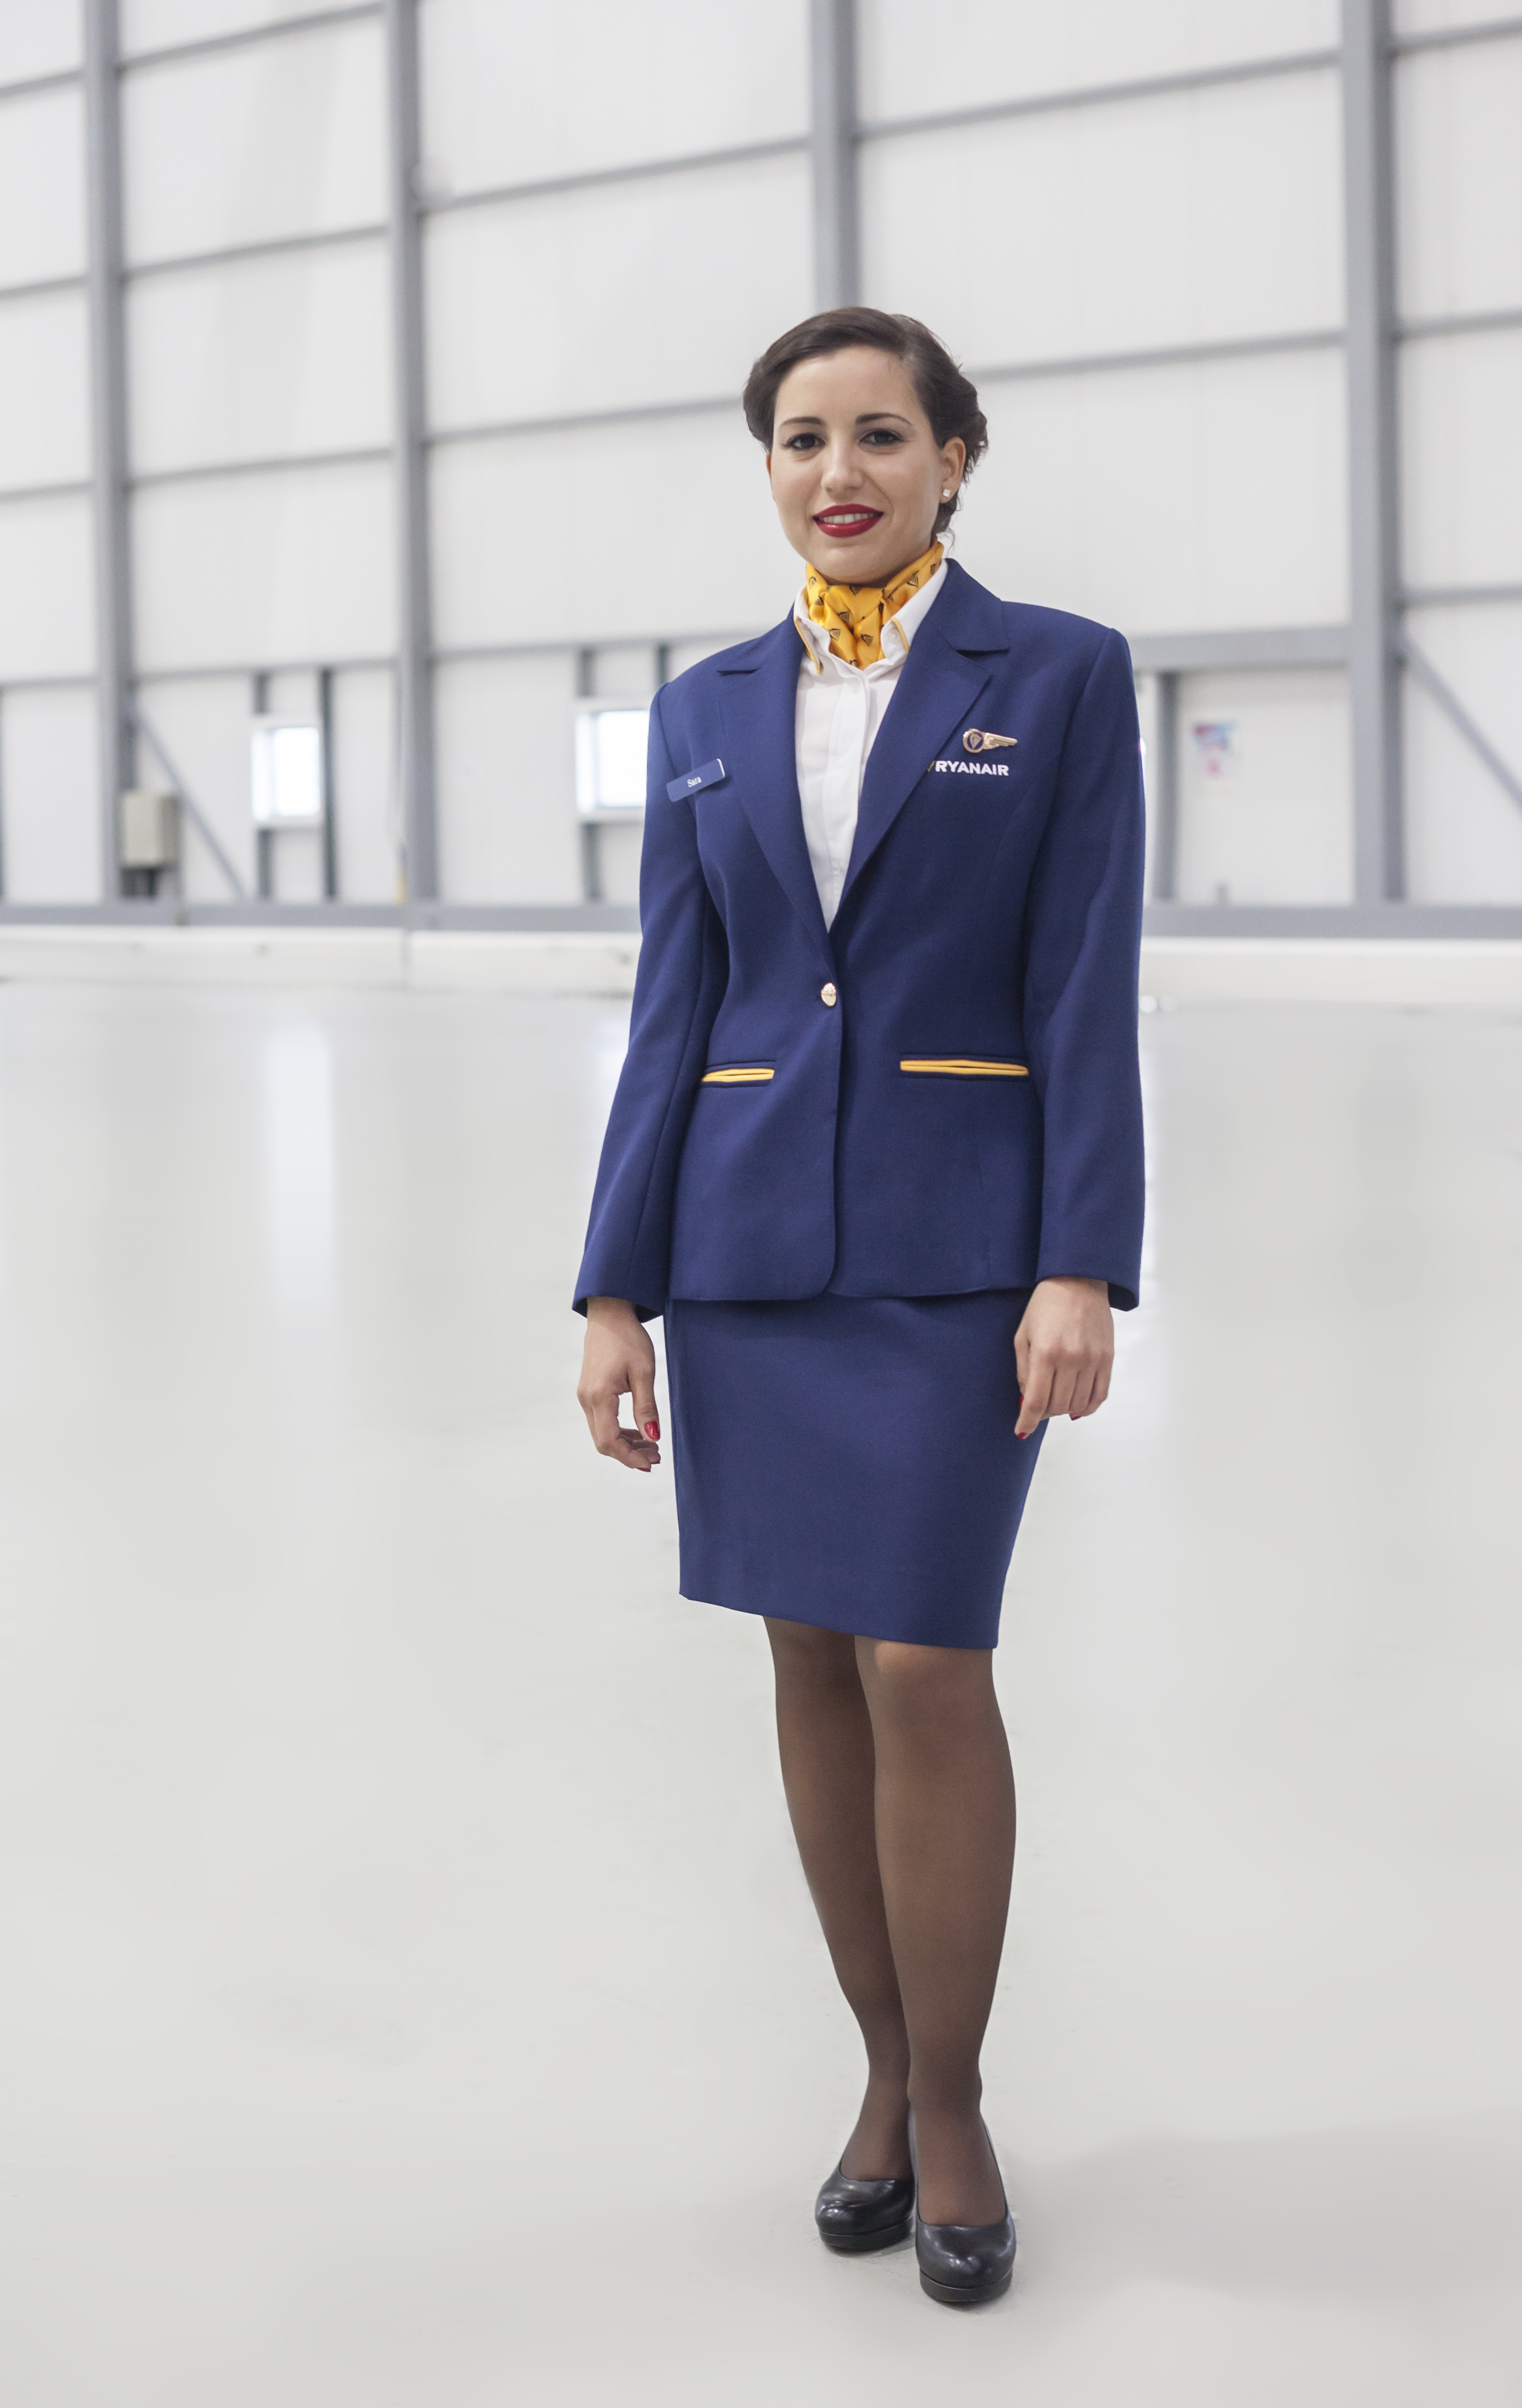 ryanairs corporate culture Book cheap flights direct at the official ryanair website for europe's lowest fares fully allocated seating and much more now available online.